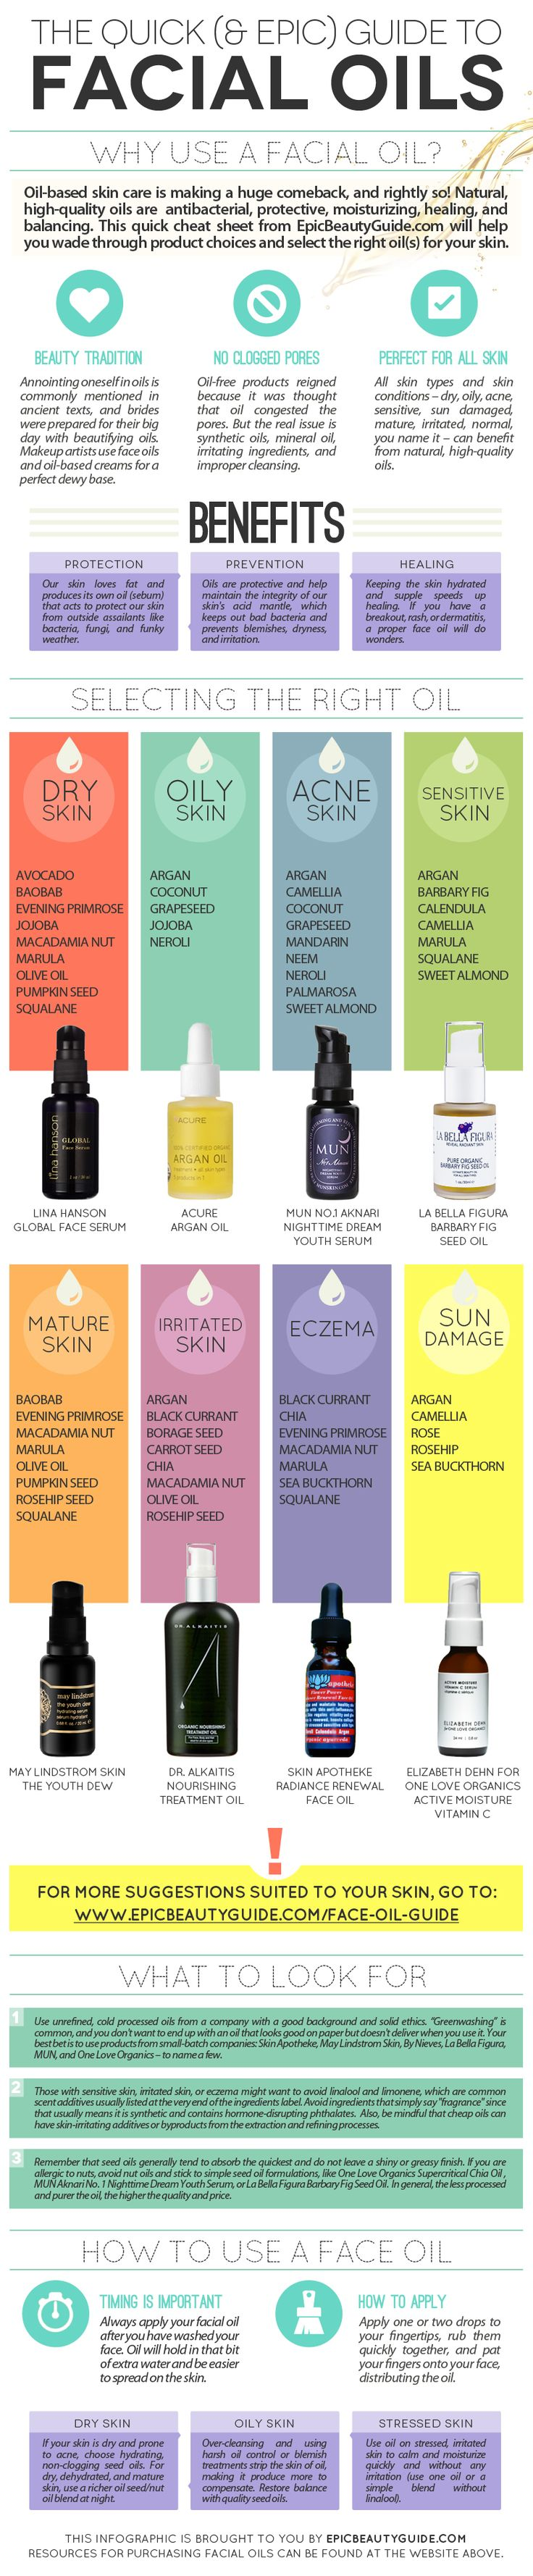 Epic-Beauty-Guide-Facial-Oils.jpg 800×3,867 pixels